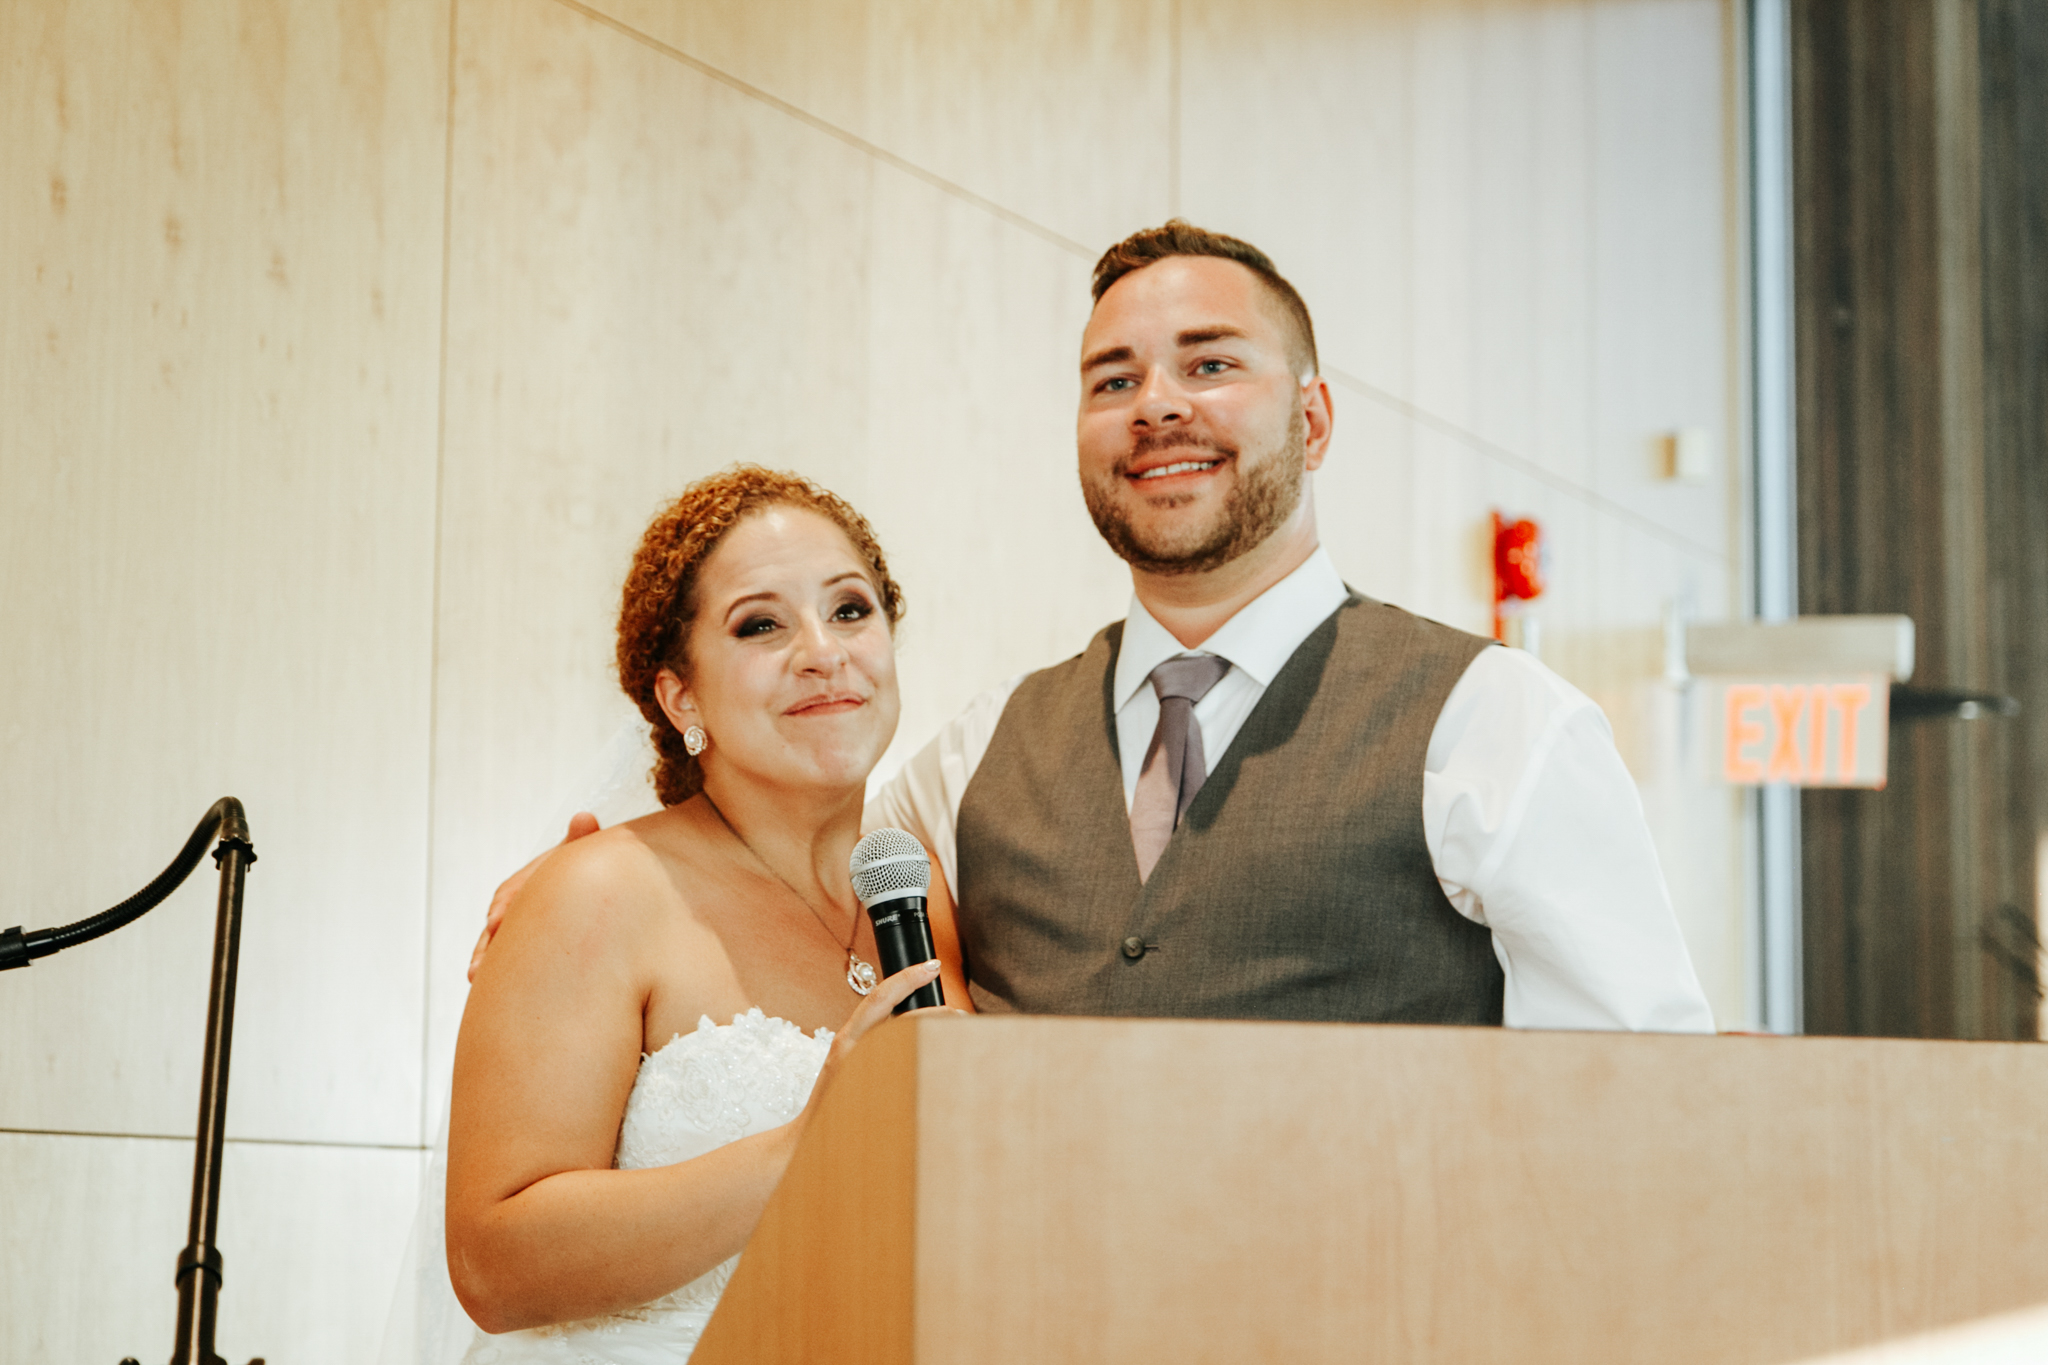 lethbridge-wedding-photographer-love-and-be-loved-photography-trent-danielle-galt-reception-picture-image-photo-192.jpg